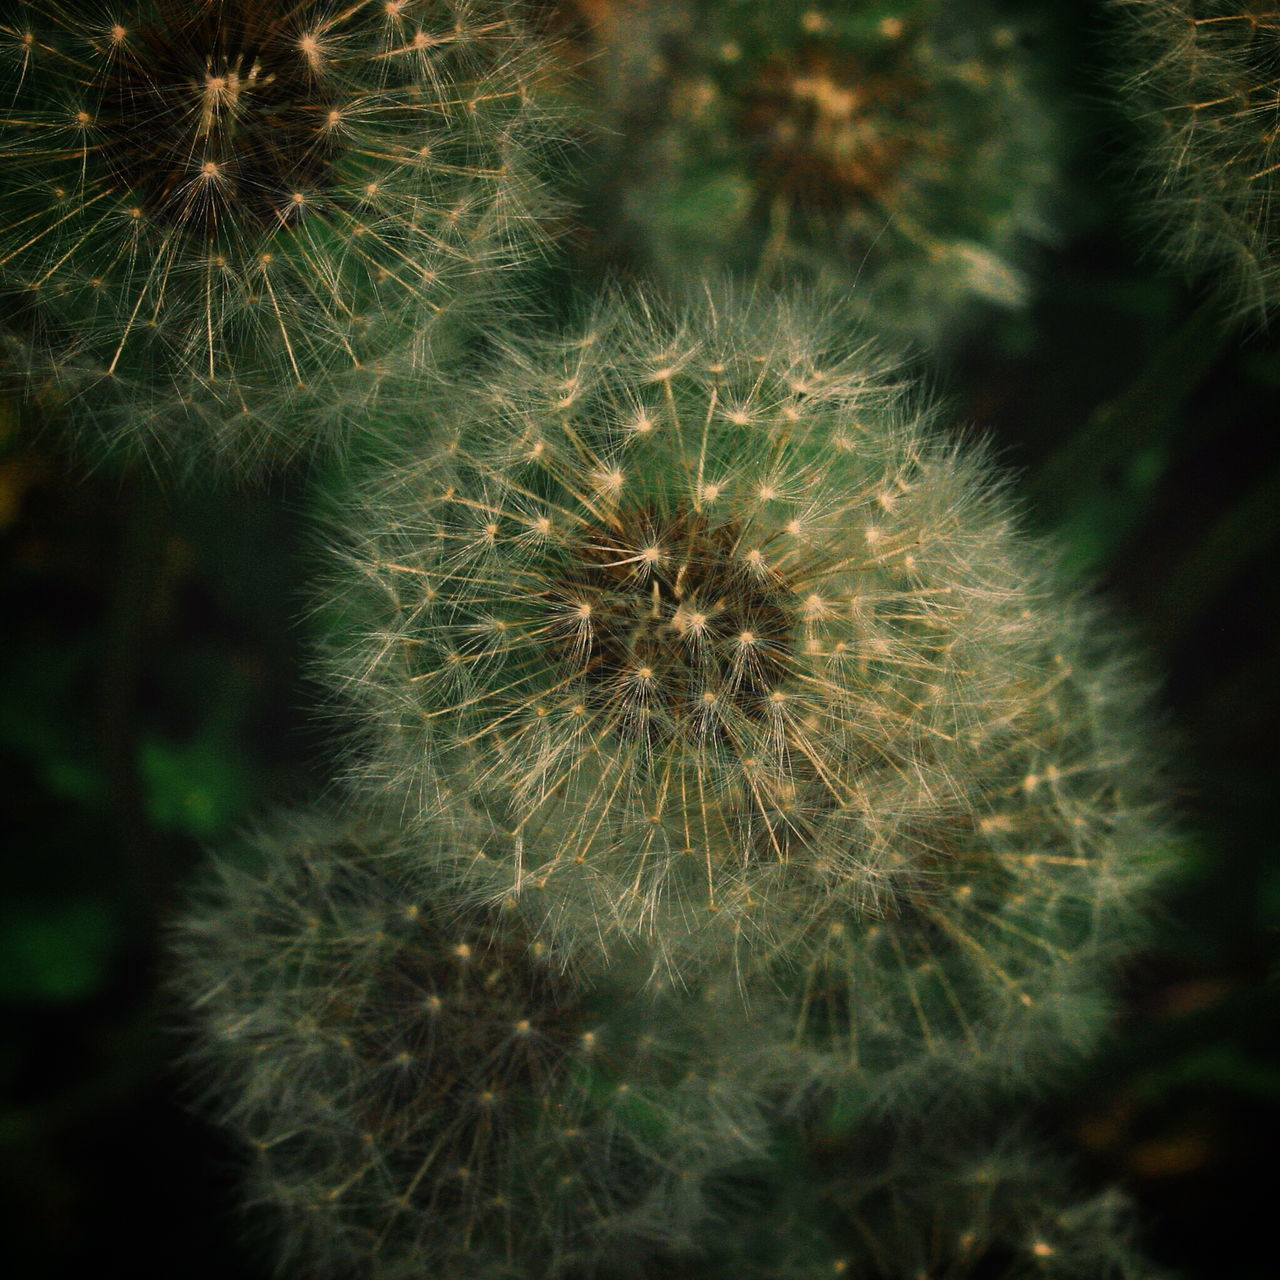 Close-Up View Of Dandelions